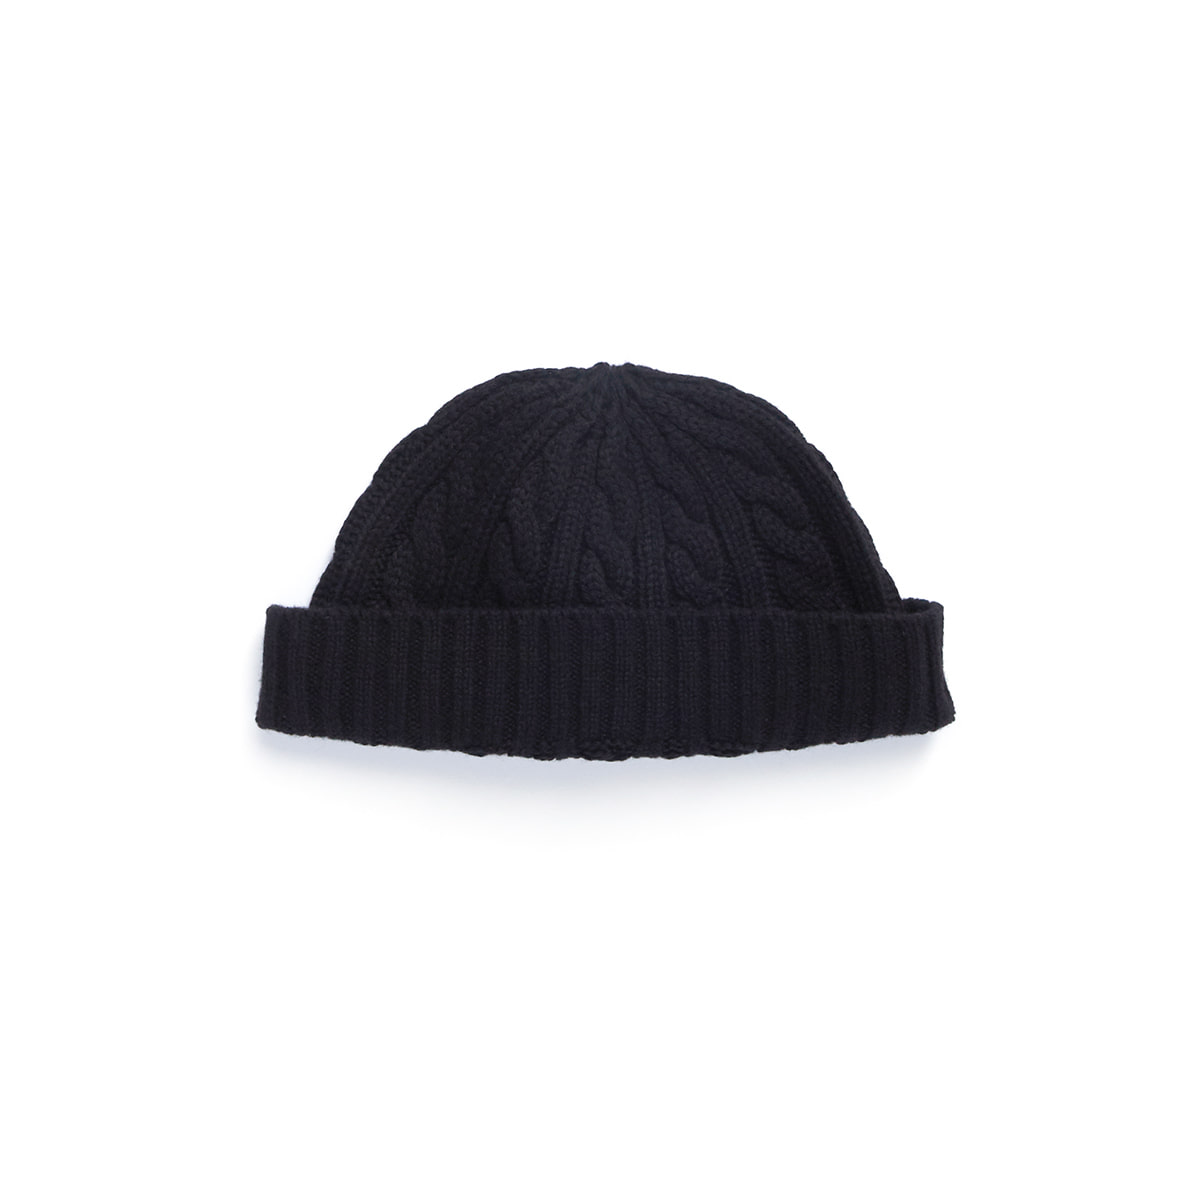 [EASTLOGUE] FISHERMAN WATCH CAP 'BLACK'